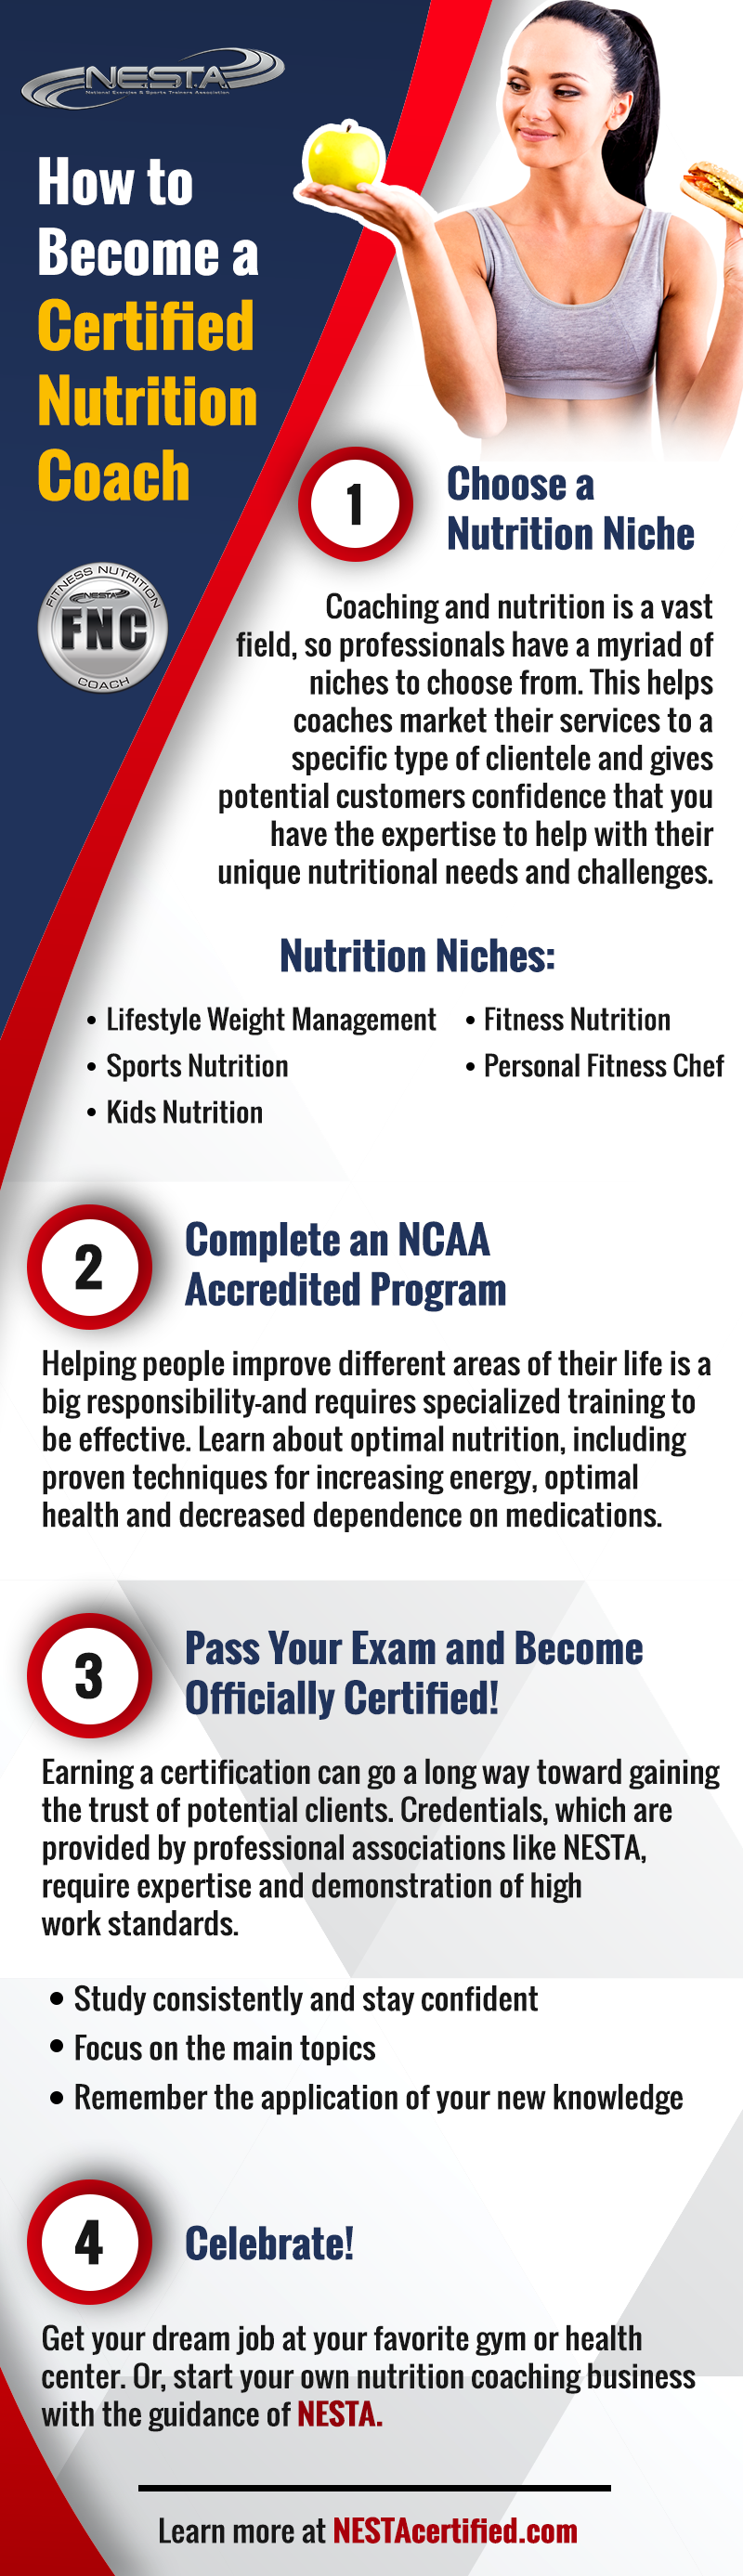 How To Become A Certified Nutrition Coach Nutrition Coach Nutrition Careers Nutrition Education